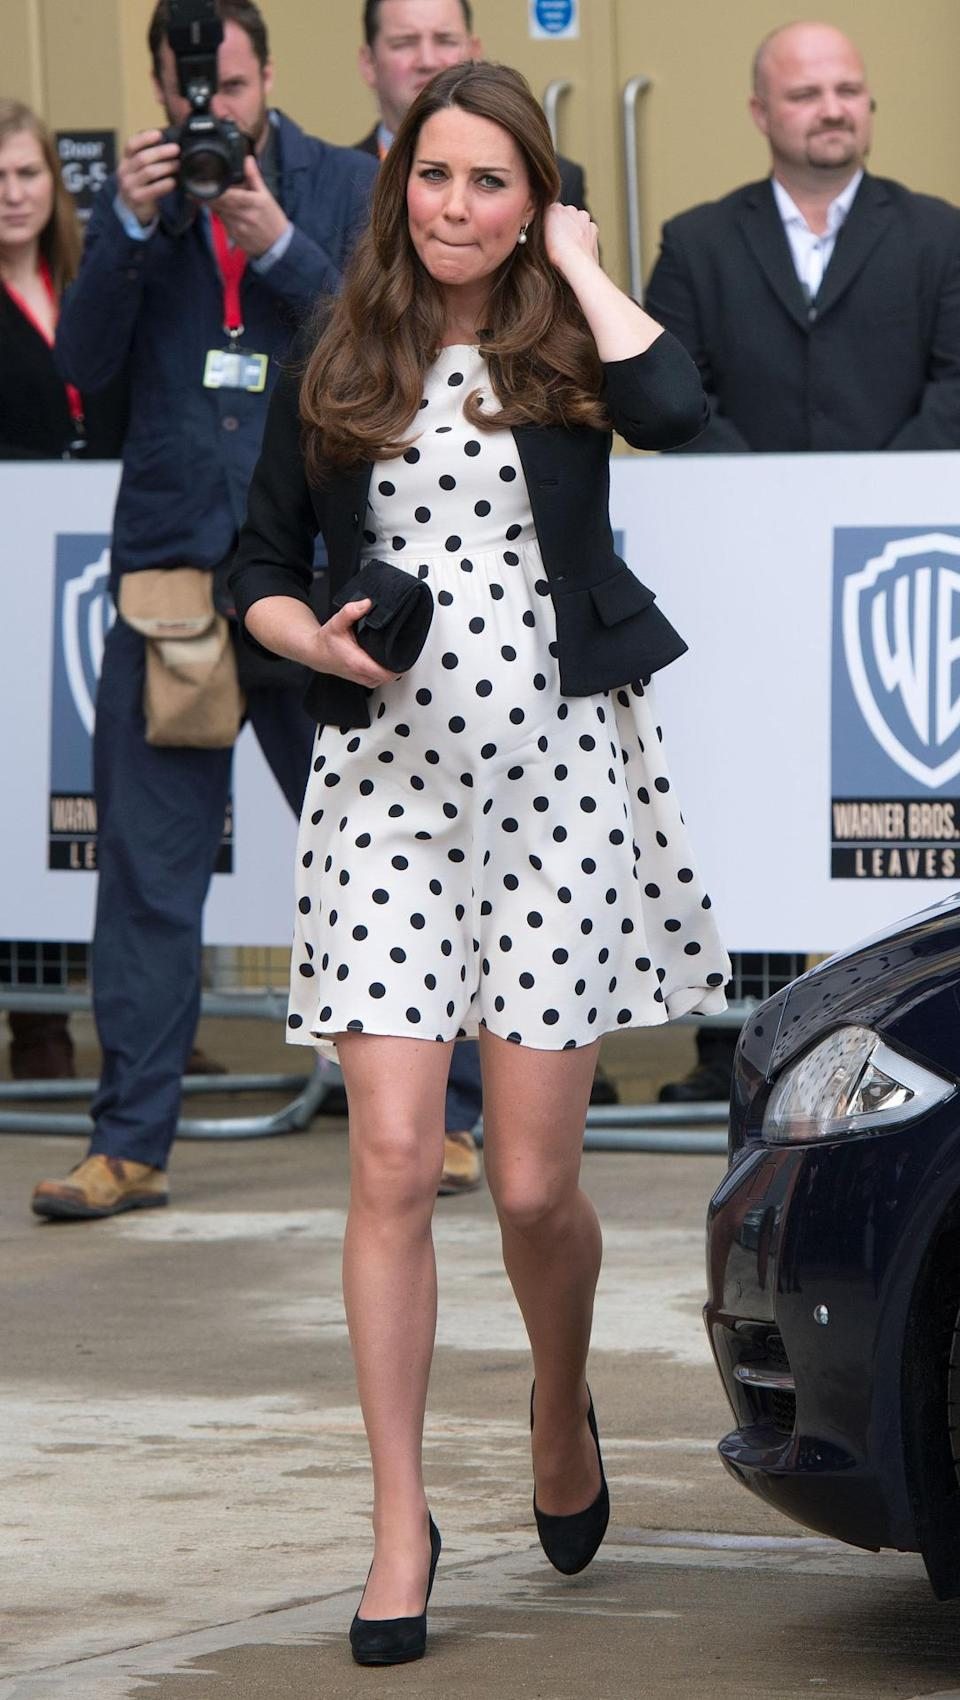 <p>Kate wore a monochrome polka dot dress from Topshop for the Warner Bros Studio Tour. She teamed the outfit with a black jacket, Episode pumps and a suede clutch. </p><p><i>[Photo: PA]</i></p>